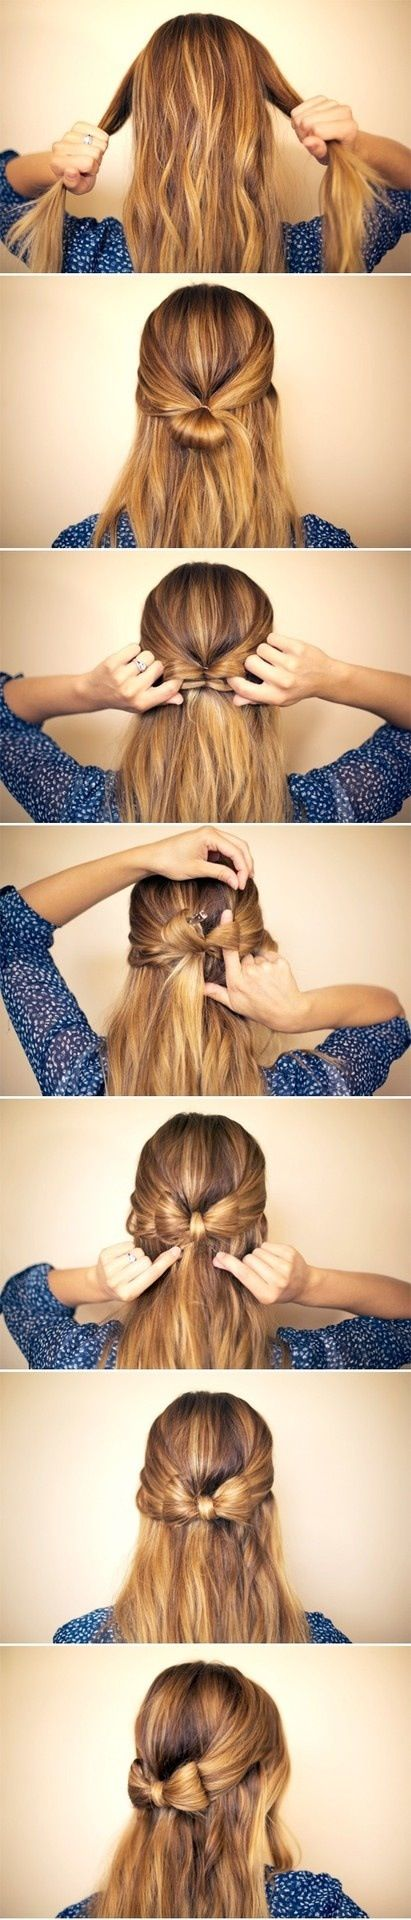 mini hair bow how-to! must. try.